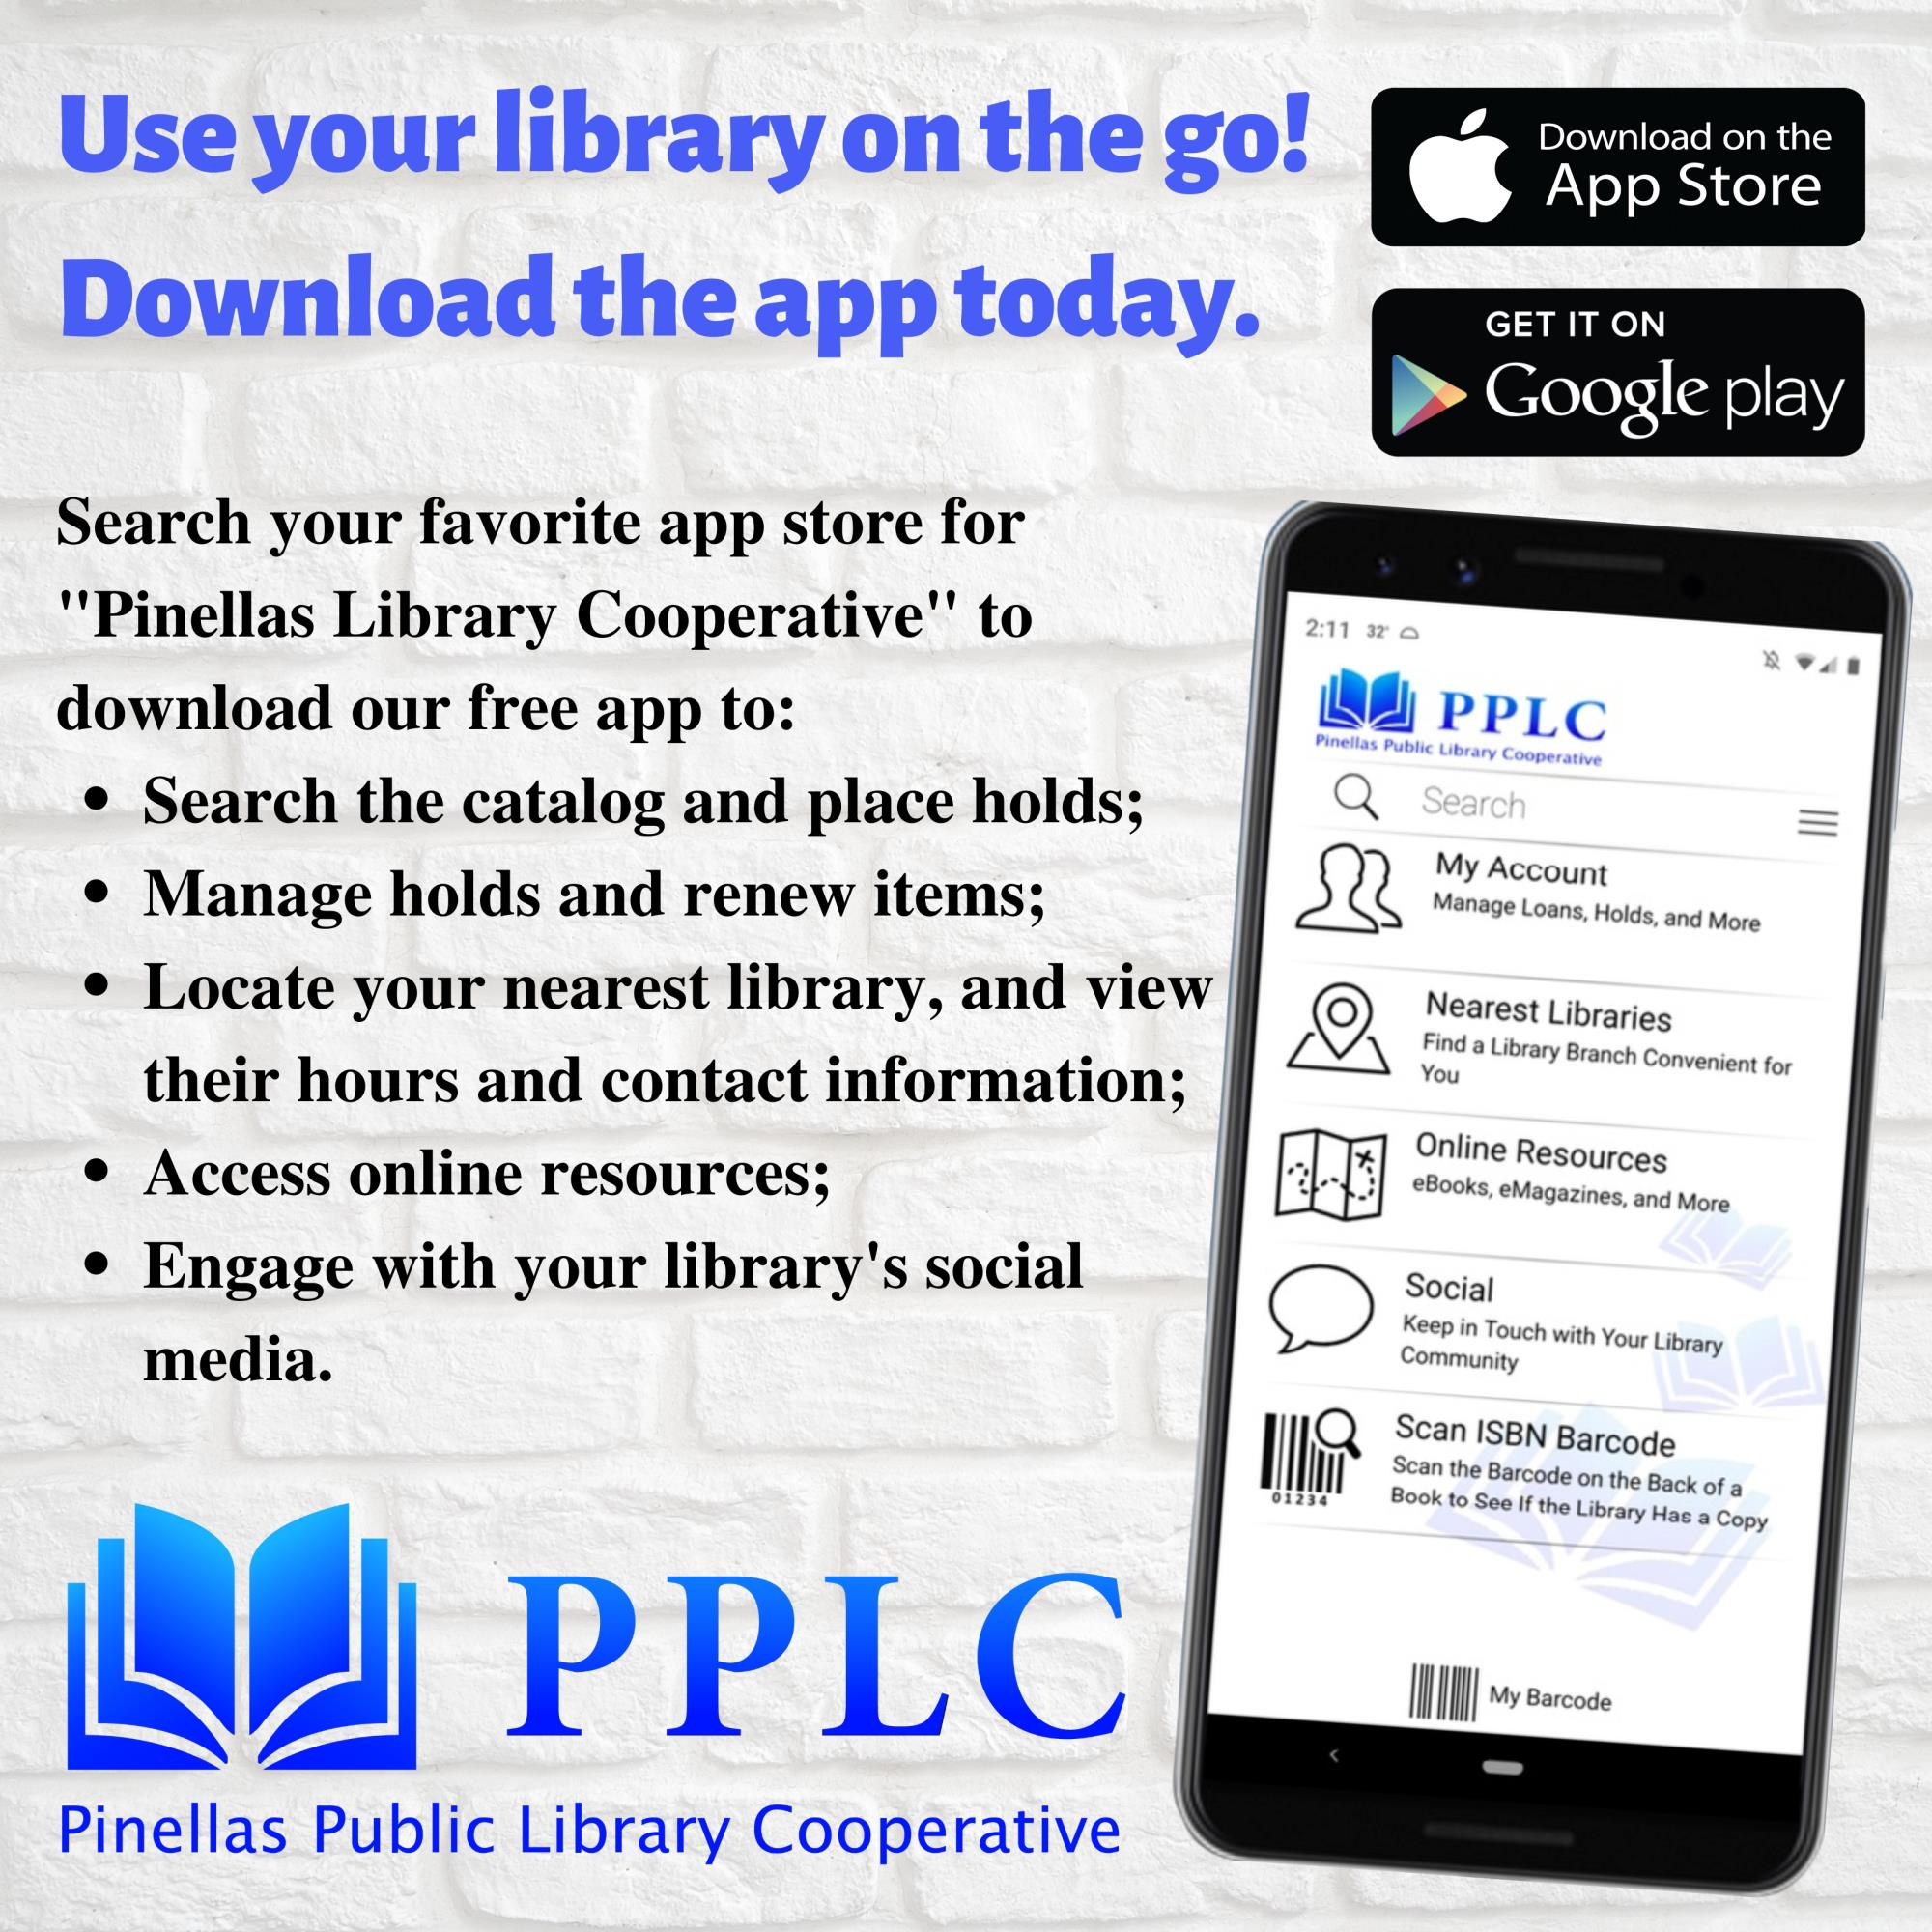 Use your library on the go! Download the app today.